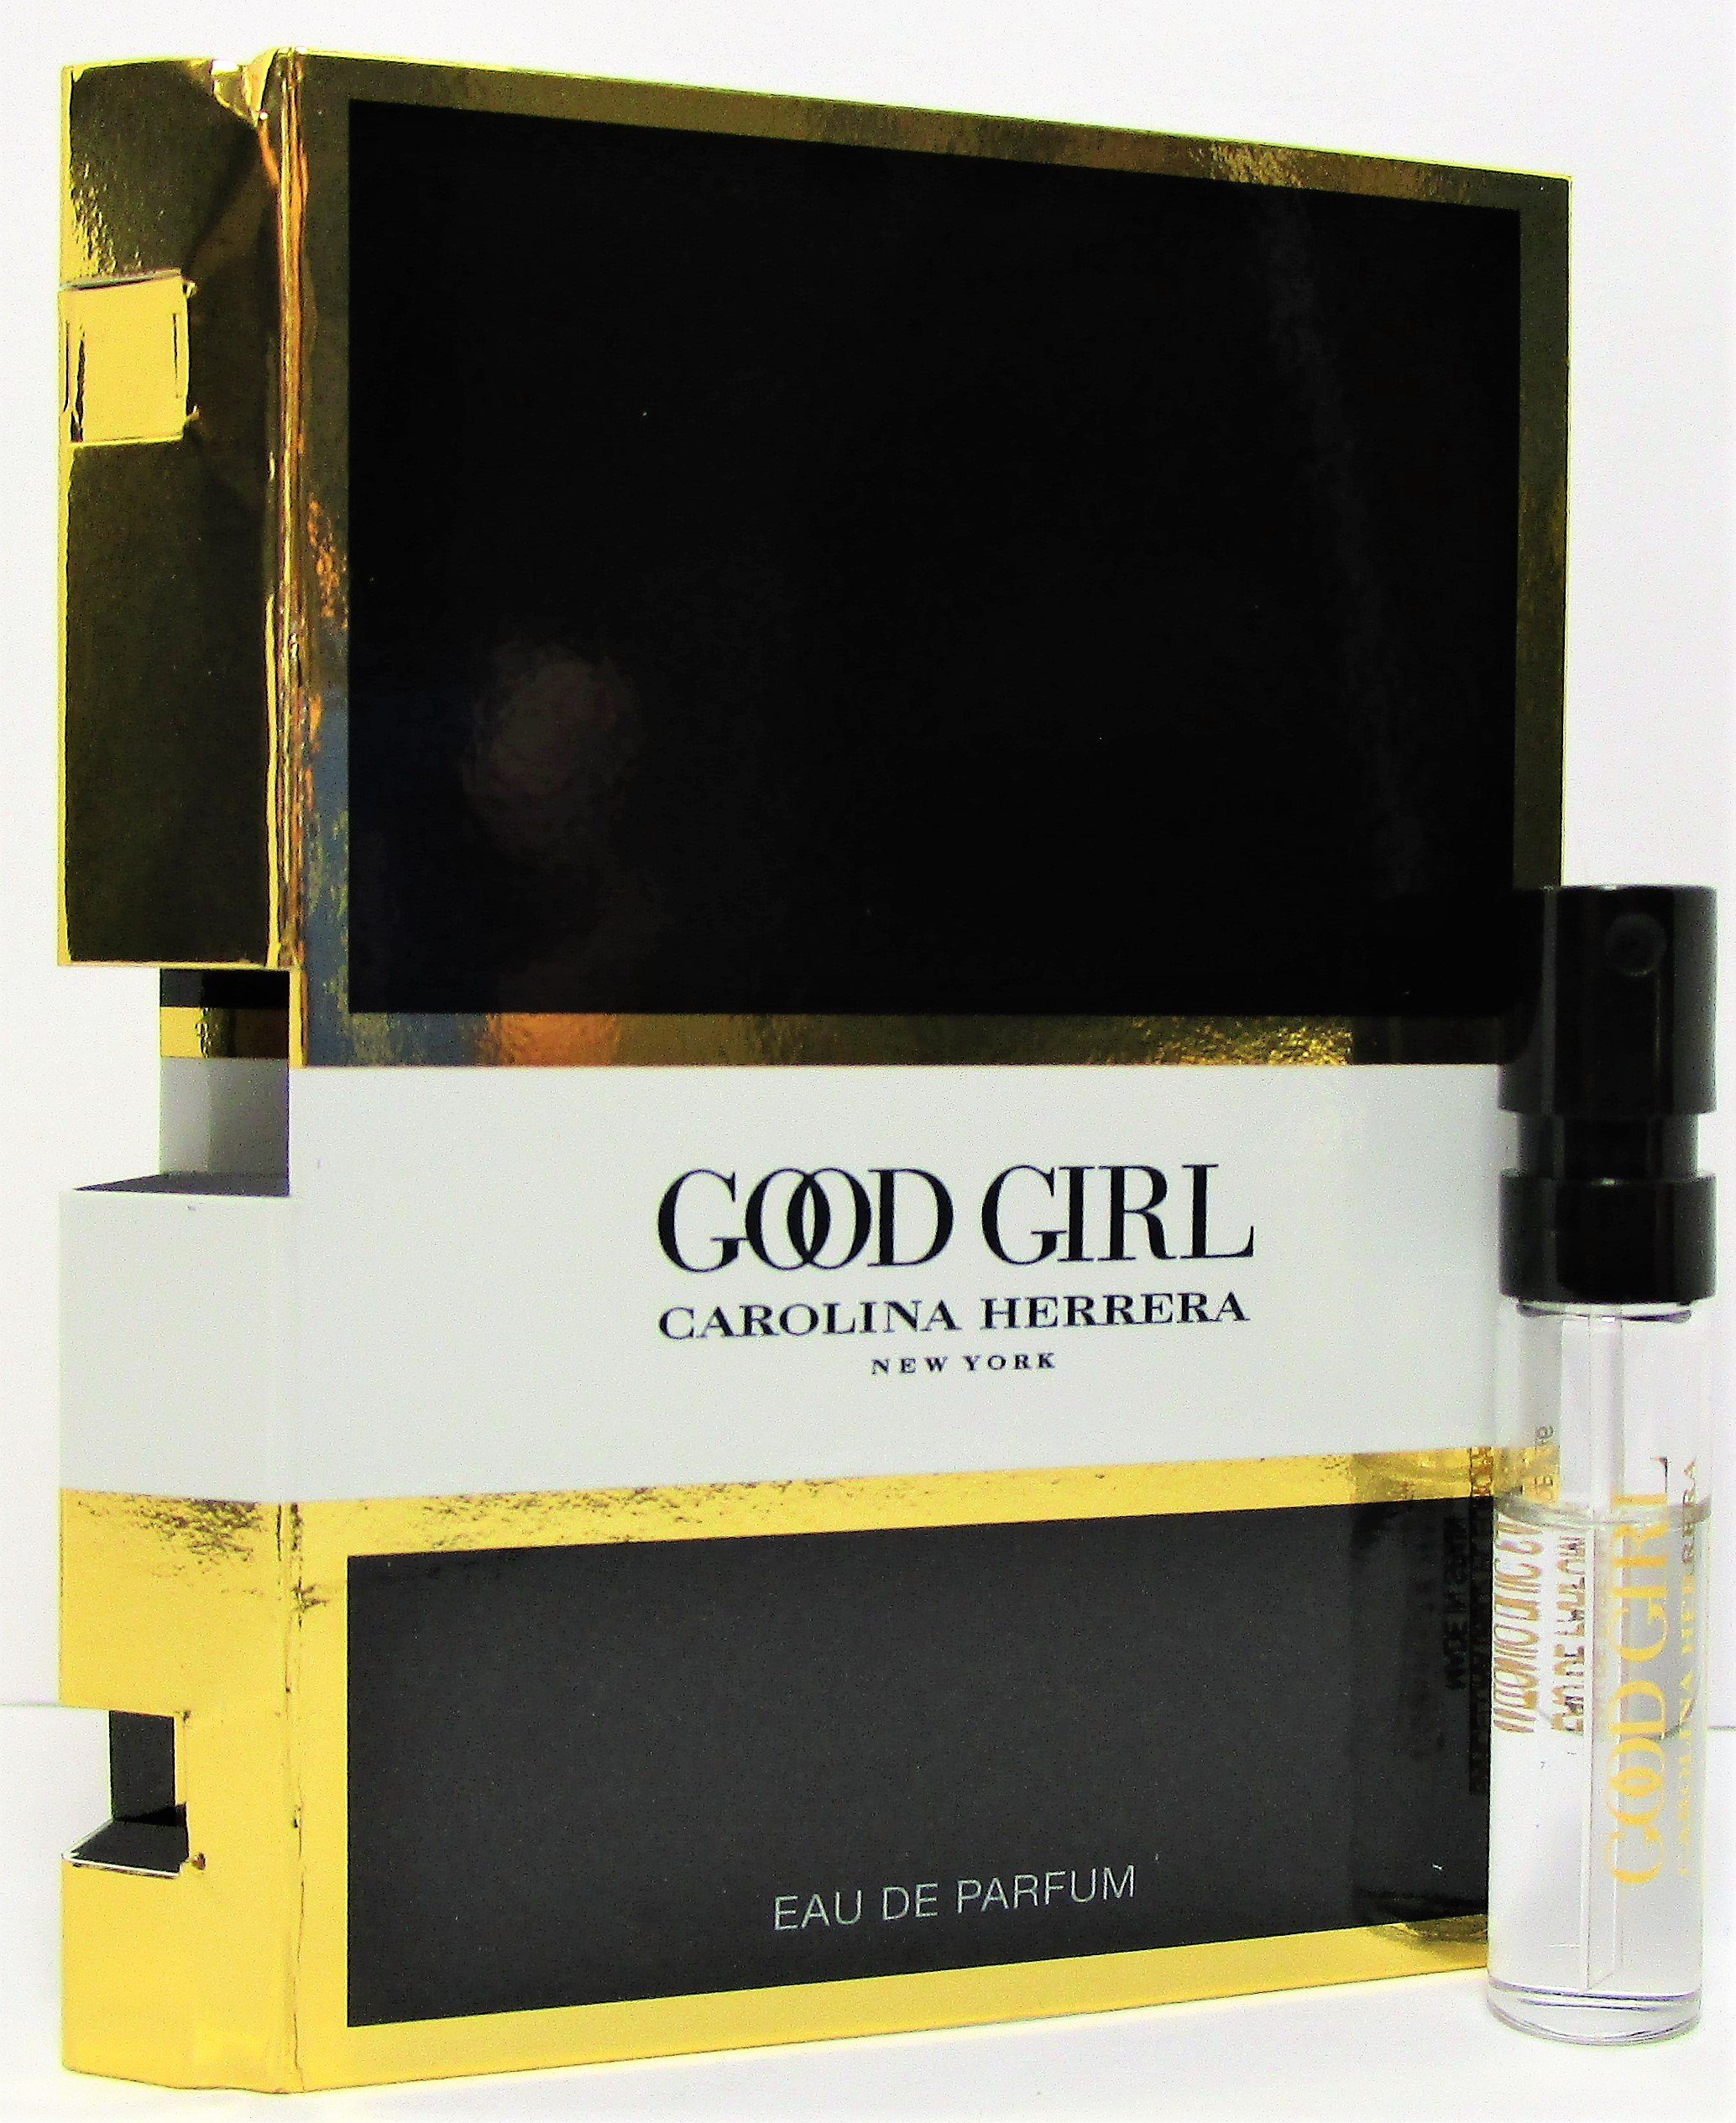 Carolina Herrera Good Girl Eau de Parfum Vial Spray for Women 0.05 oz   1.5  ml 1b03ff0cda